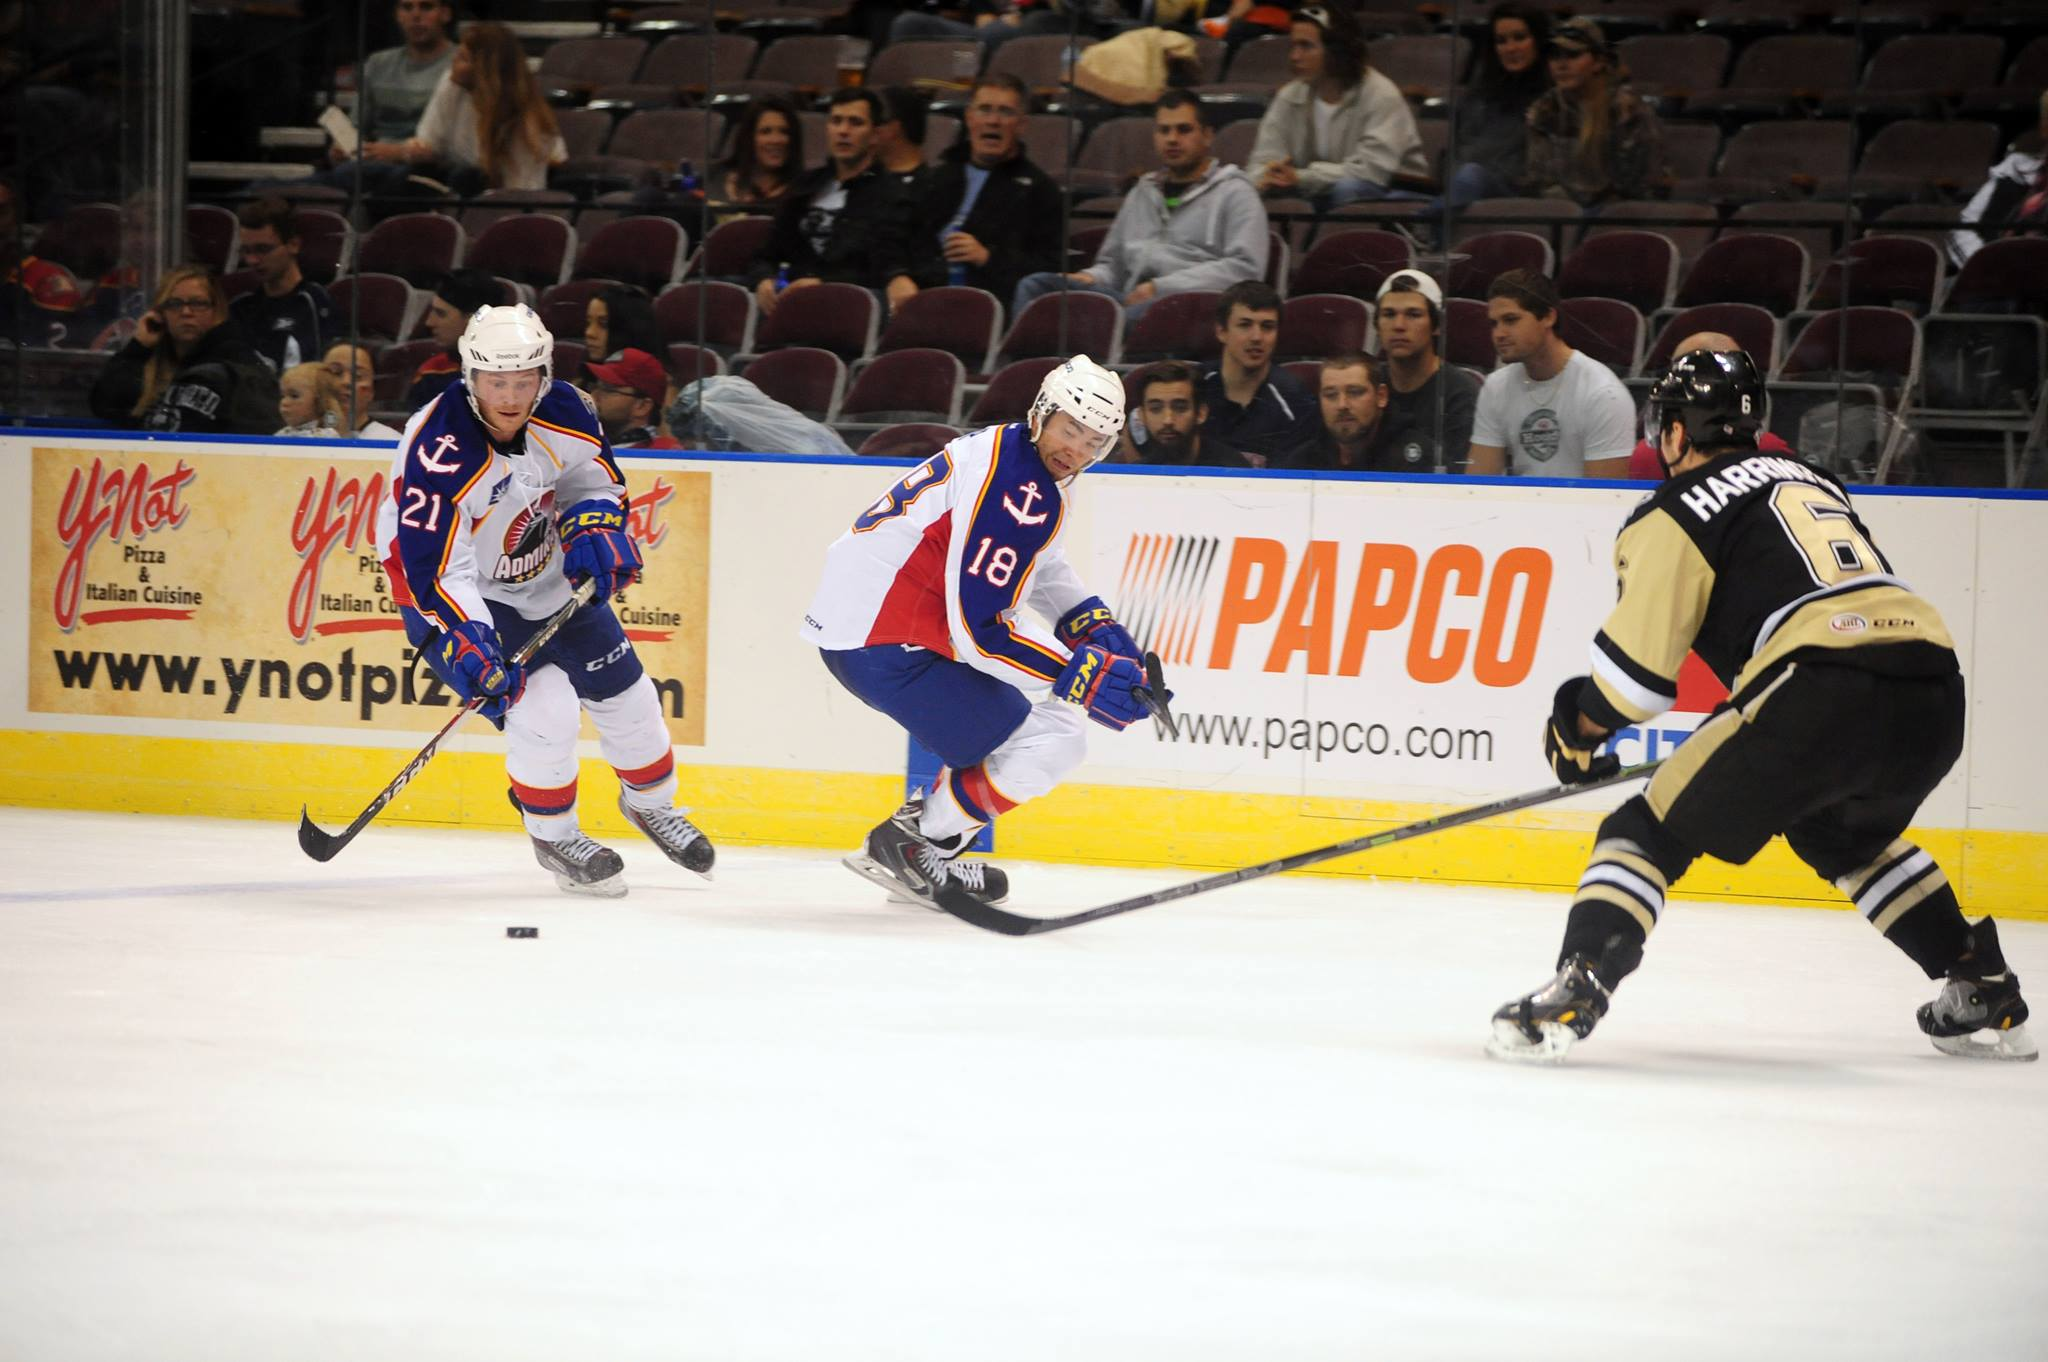 Chris Wagner and Brandon Yip powered the Admirals to a 3-2 OT win over the WBS Penguins Oct 31, 2014